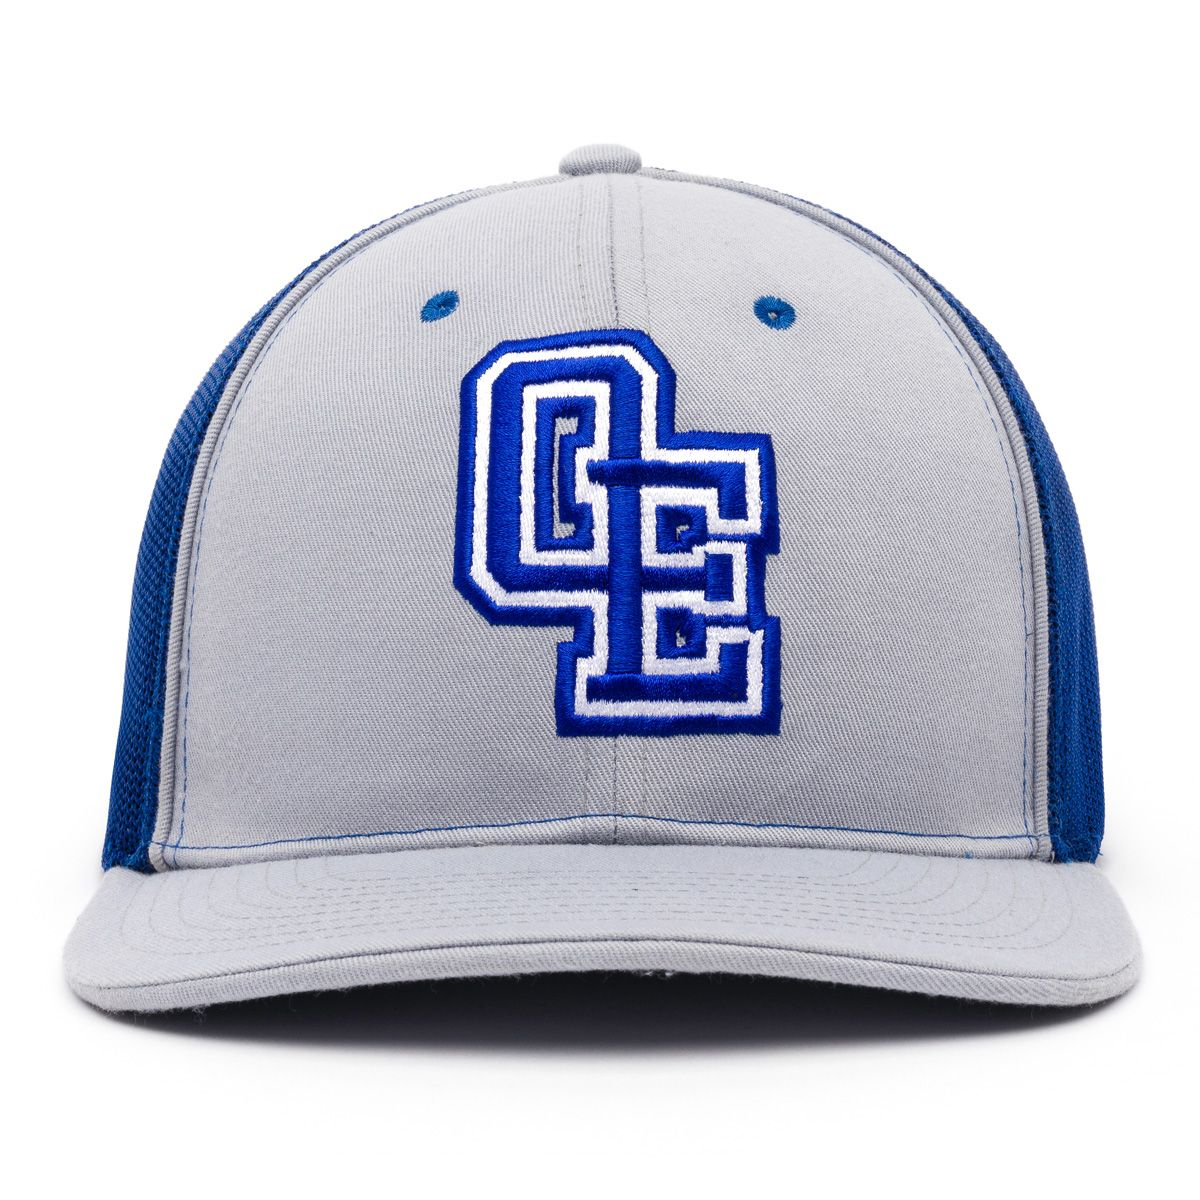 custom embroidered hat college design